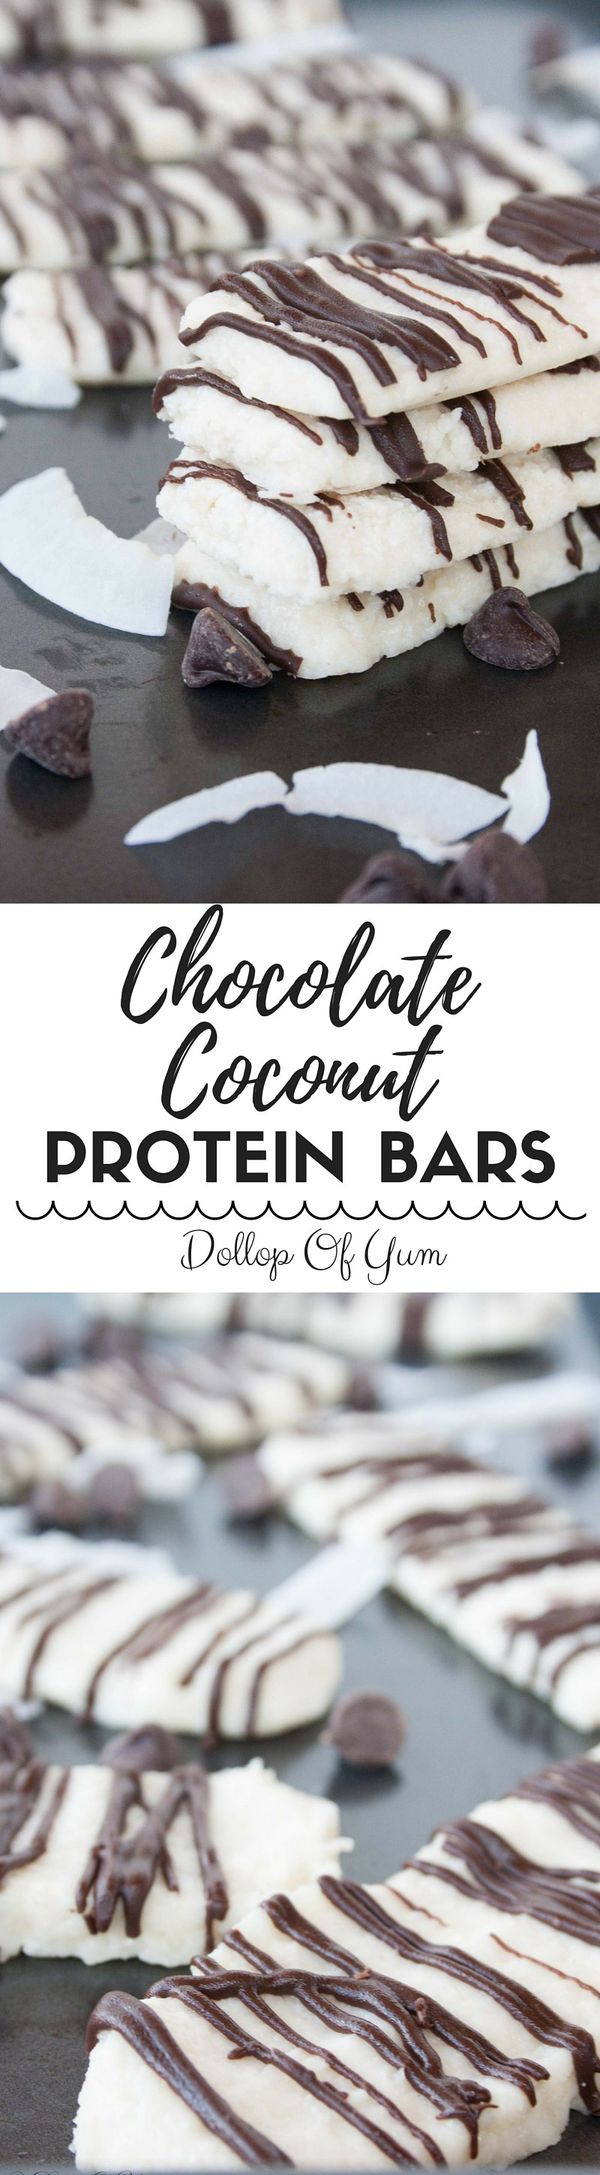 Chocolate Coconut Protein Bars